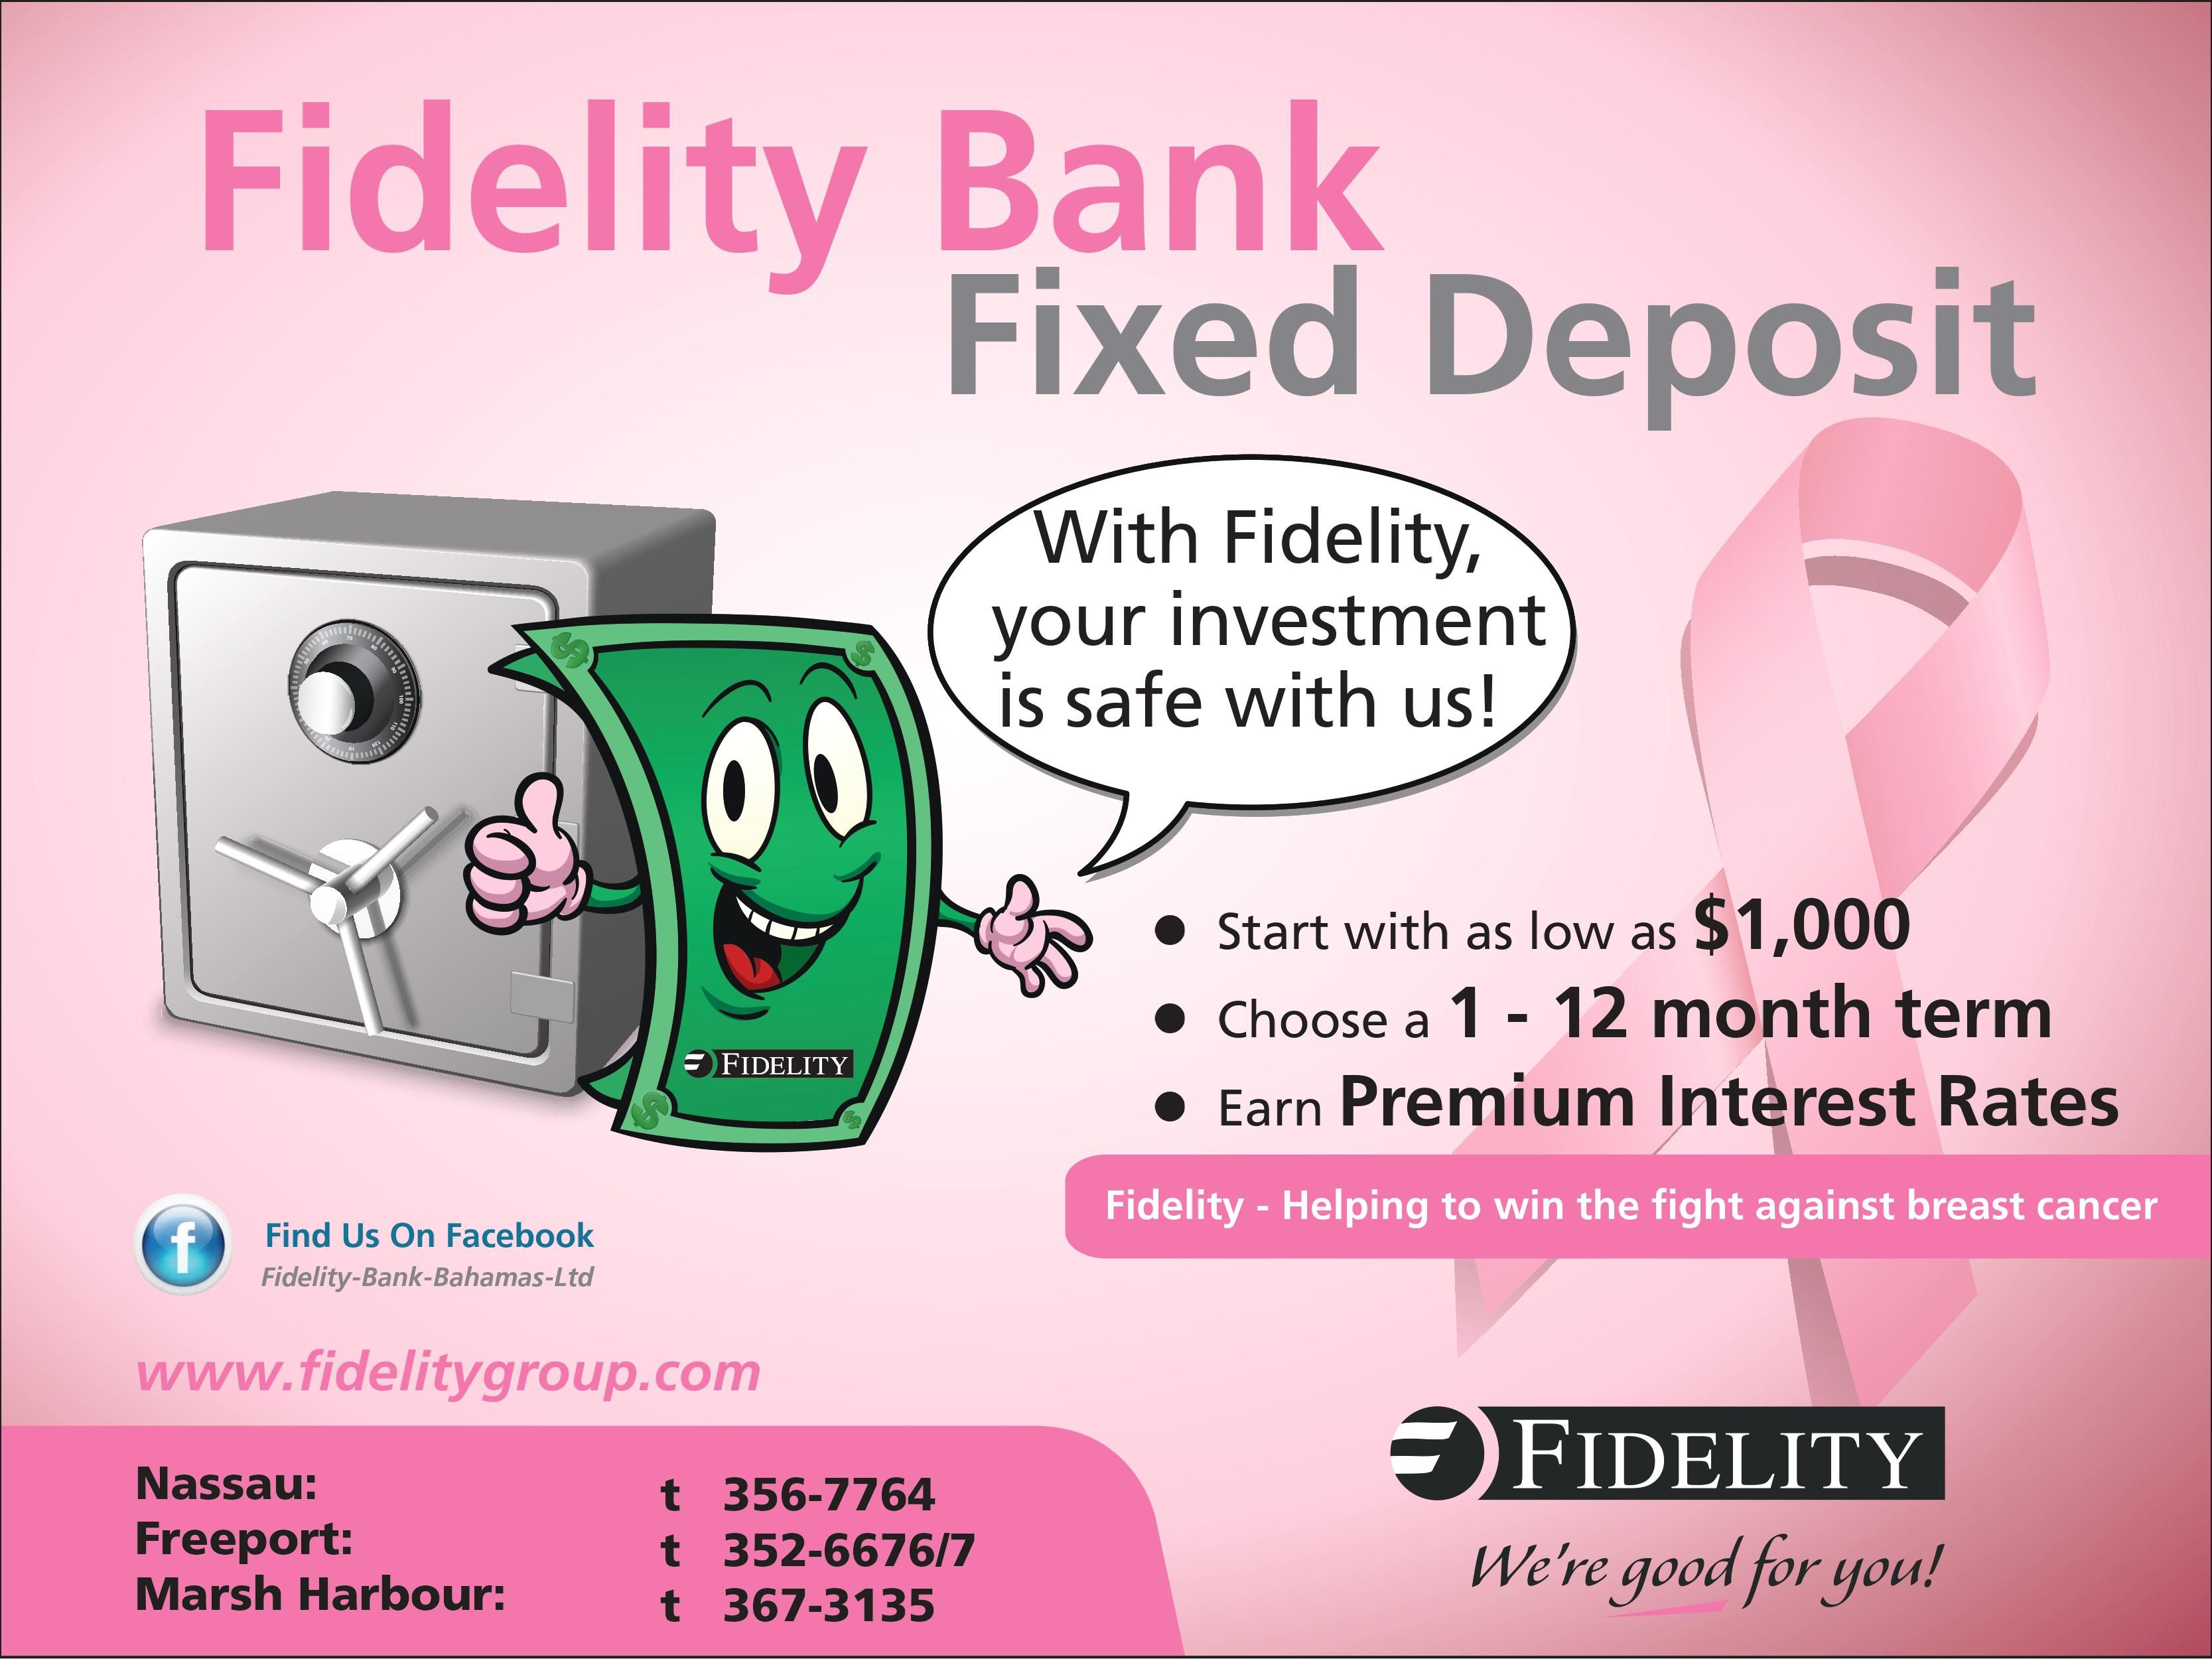 Fidelity bank fixed deposit with fidelity your